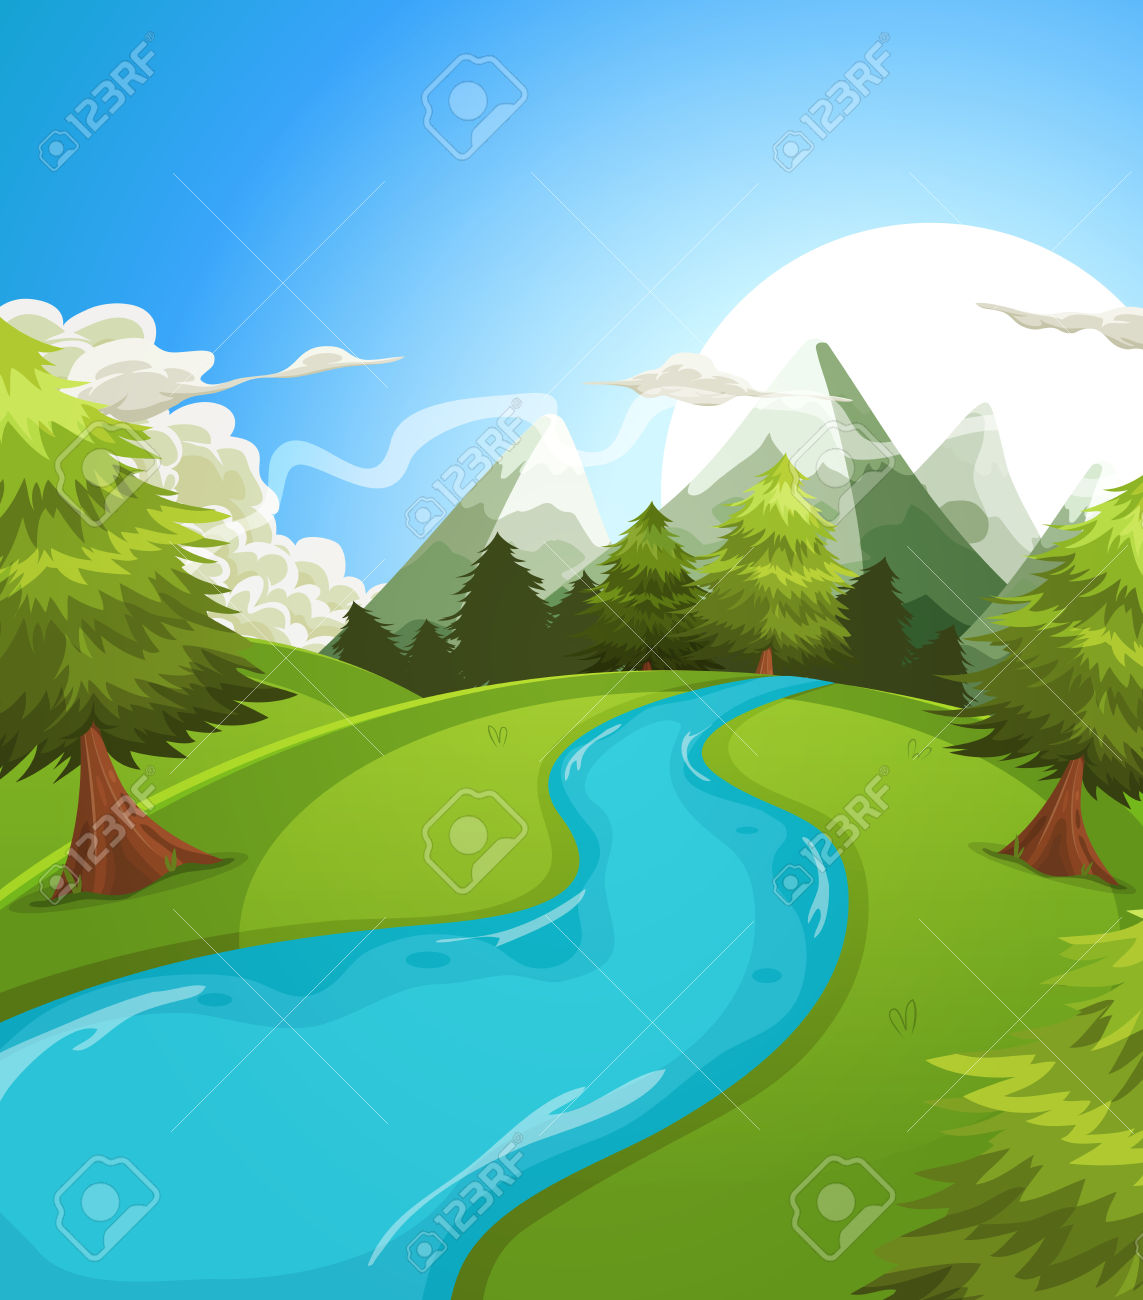 River background clipart jpg royalty free stock 76,631 Stream Stock Vector Illustration And Royalty Free Stream ... jpg royalty free stock